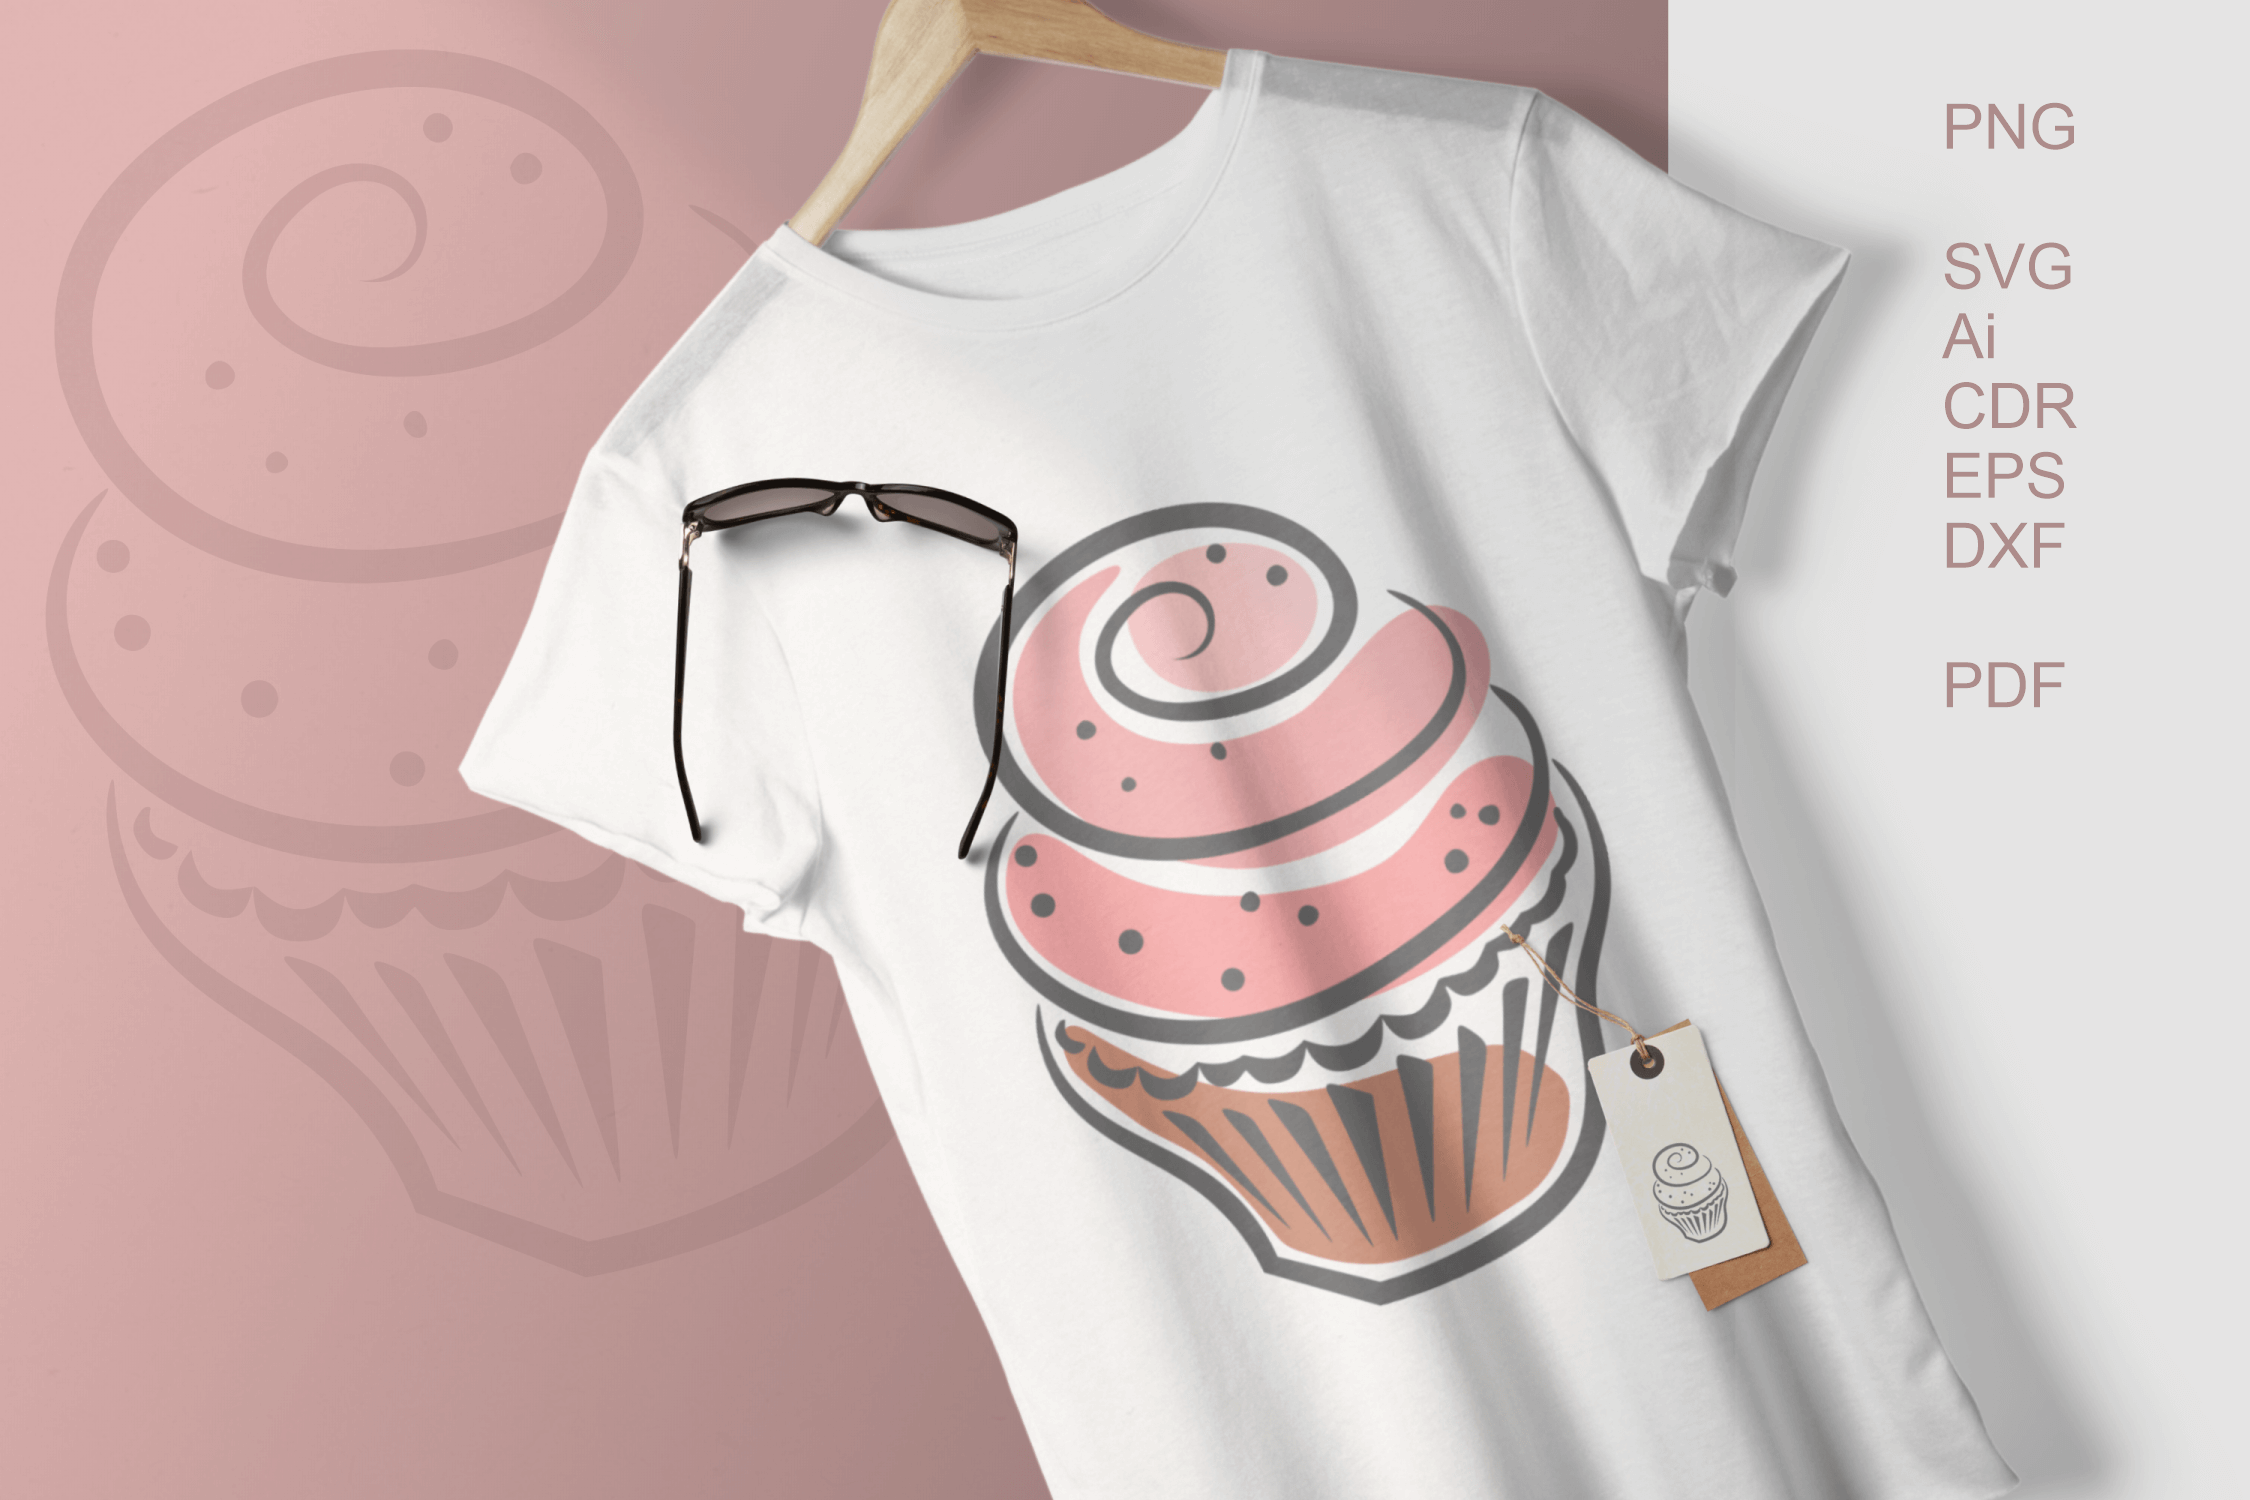 Cupcakes Clipart SVG PDF AI DXF for Crafts and Stationery example image 1